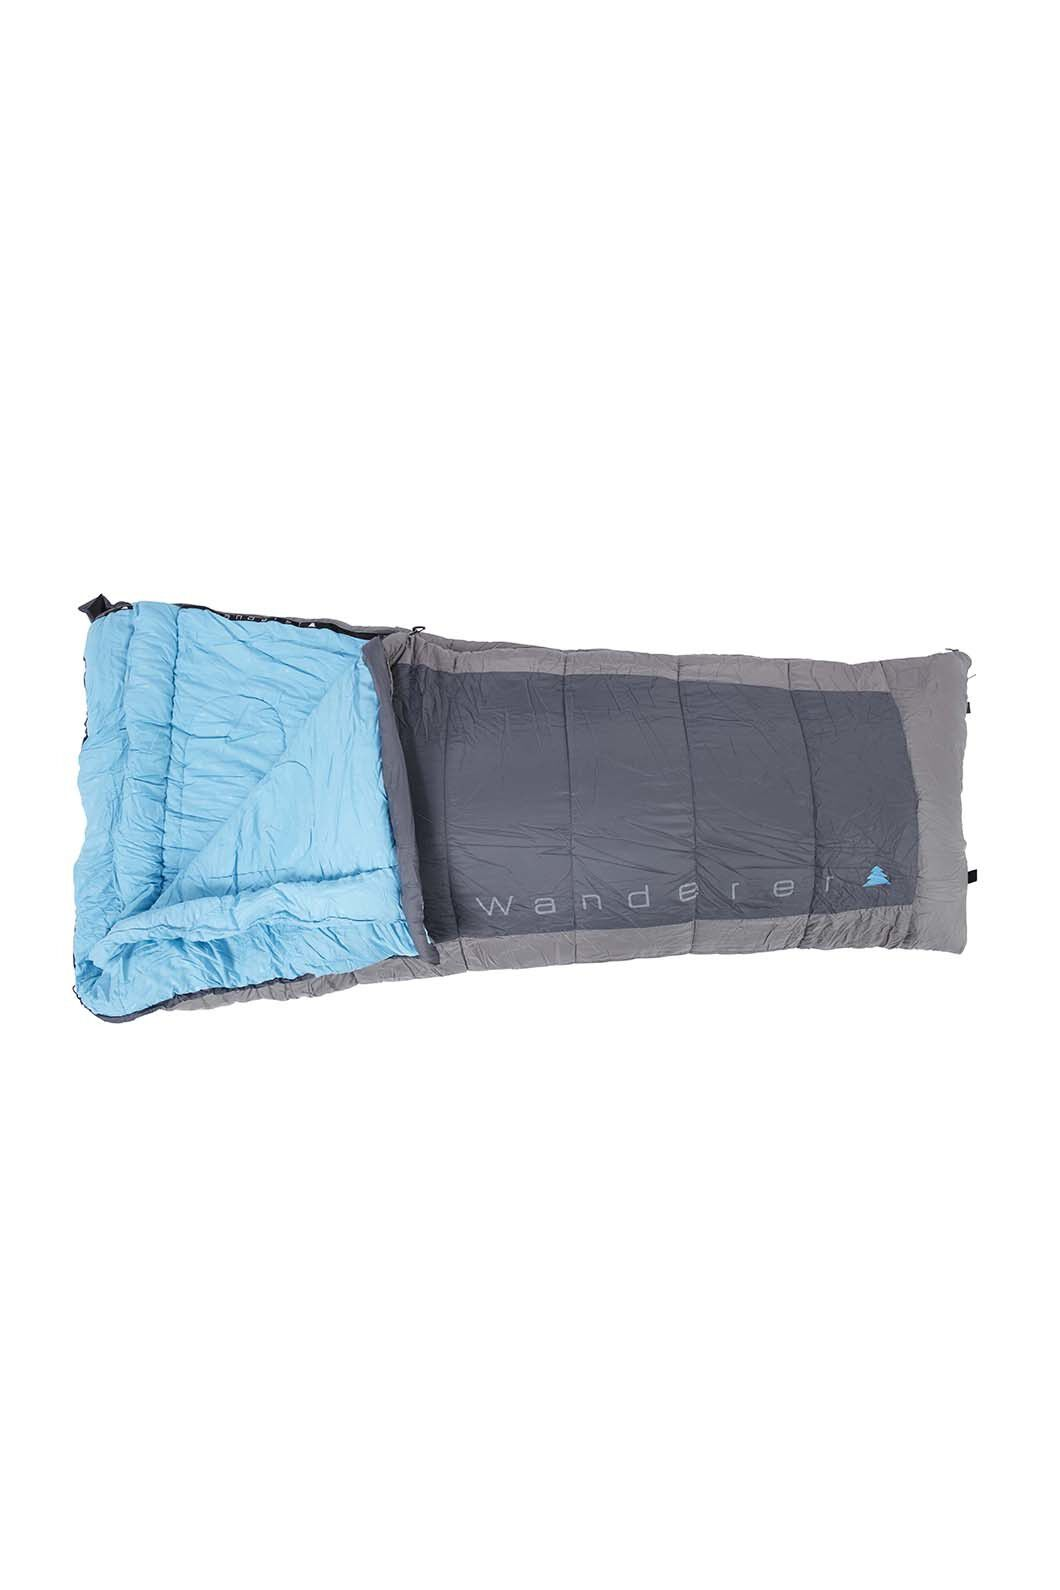 Wanderer SureFlame Camper Sleeping Bag, None, hi-res